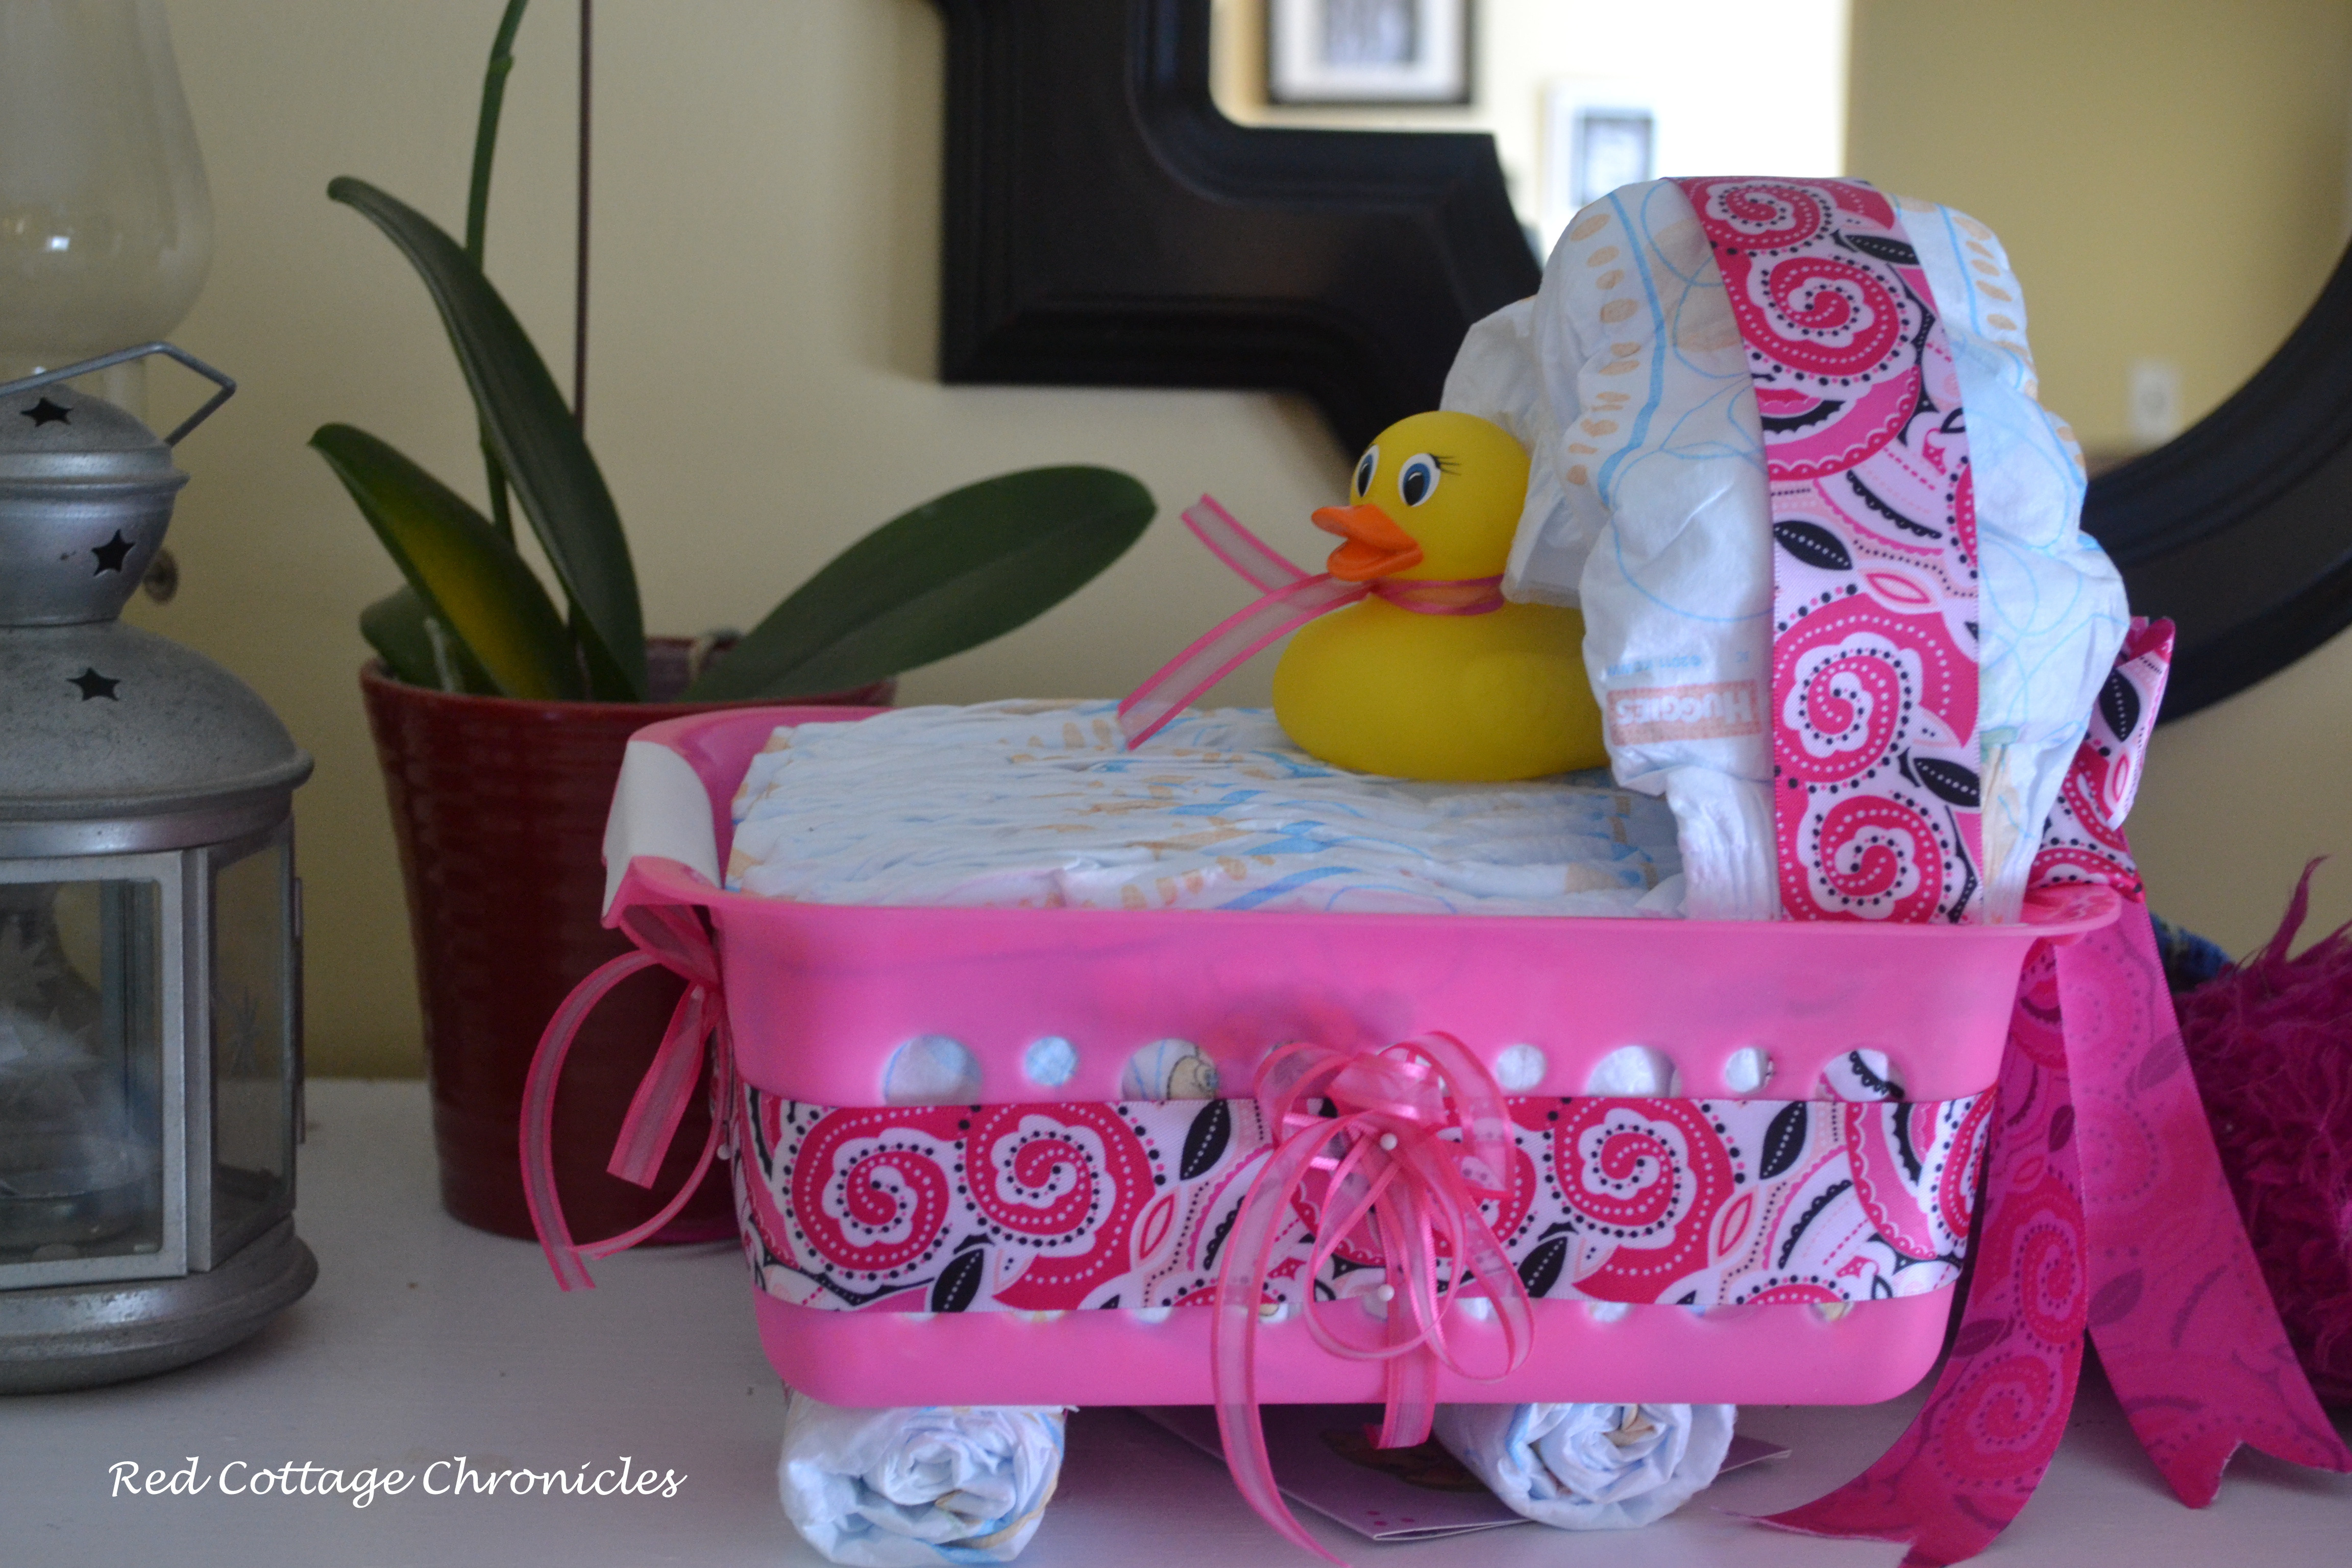 Baby Gift Ideas Pinterest  This Baby Shower Gift Idea is a practical t any new mom